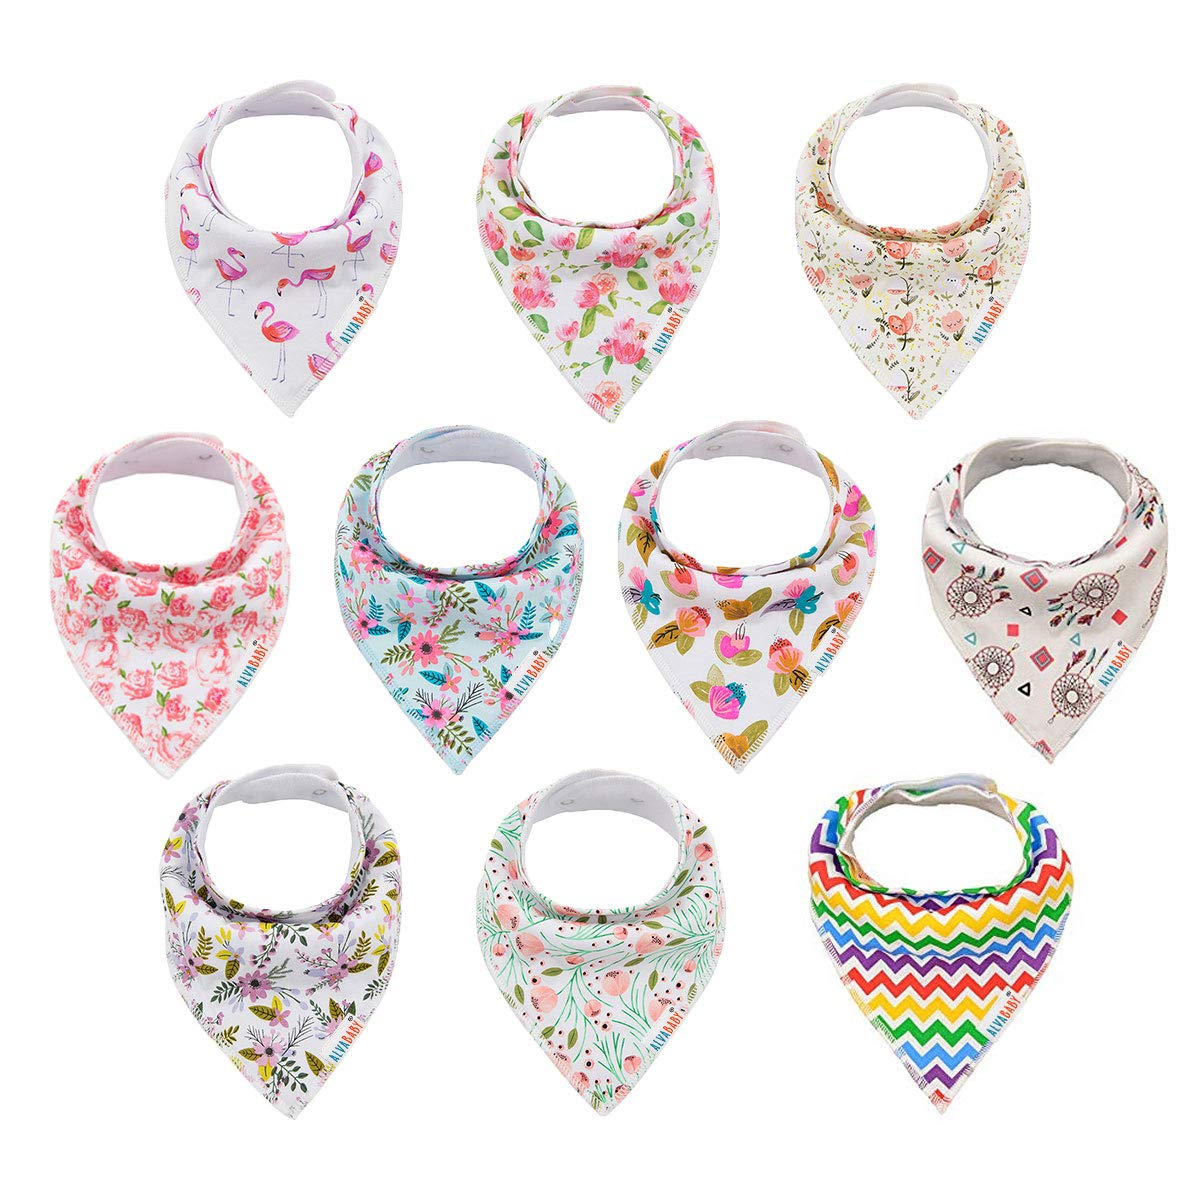 ALVABABY Baby Drool Bandana Bibs for Girls Resuable Adjstable 10 Pack Super Absorbent Baby Bibs Gift Settings 10SD01-CA